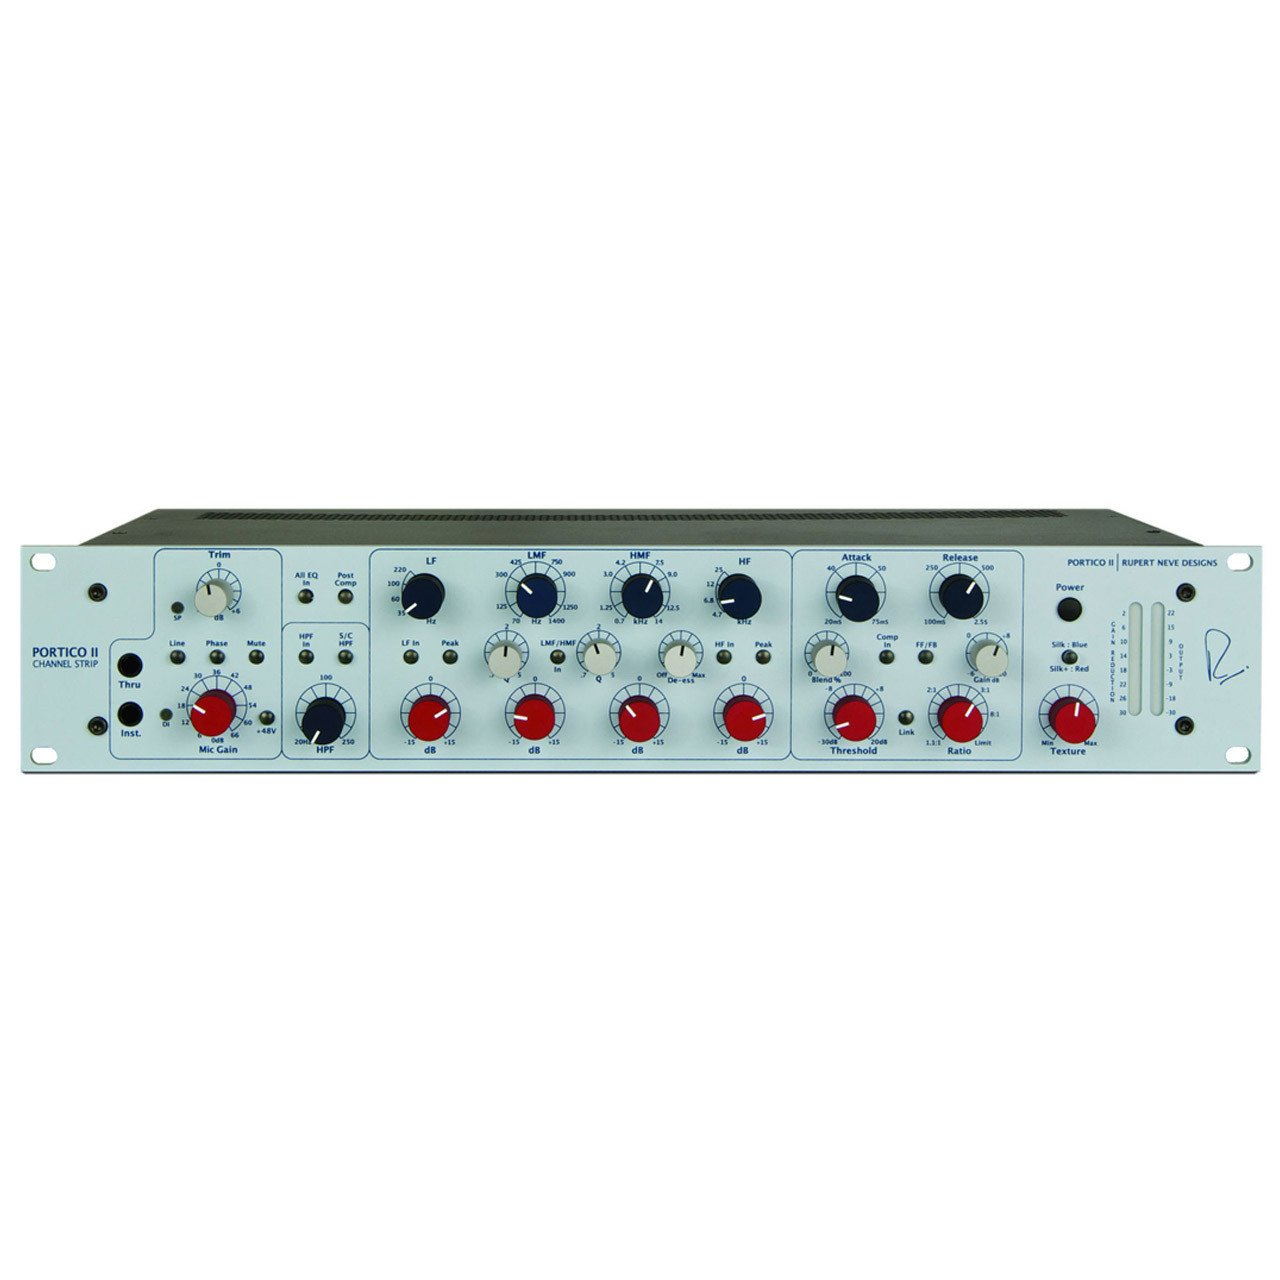 Preamps/Channel Strips - Rupert Neve Designs Portico II Channel Strip